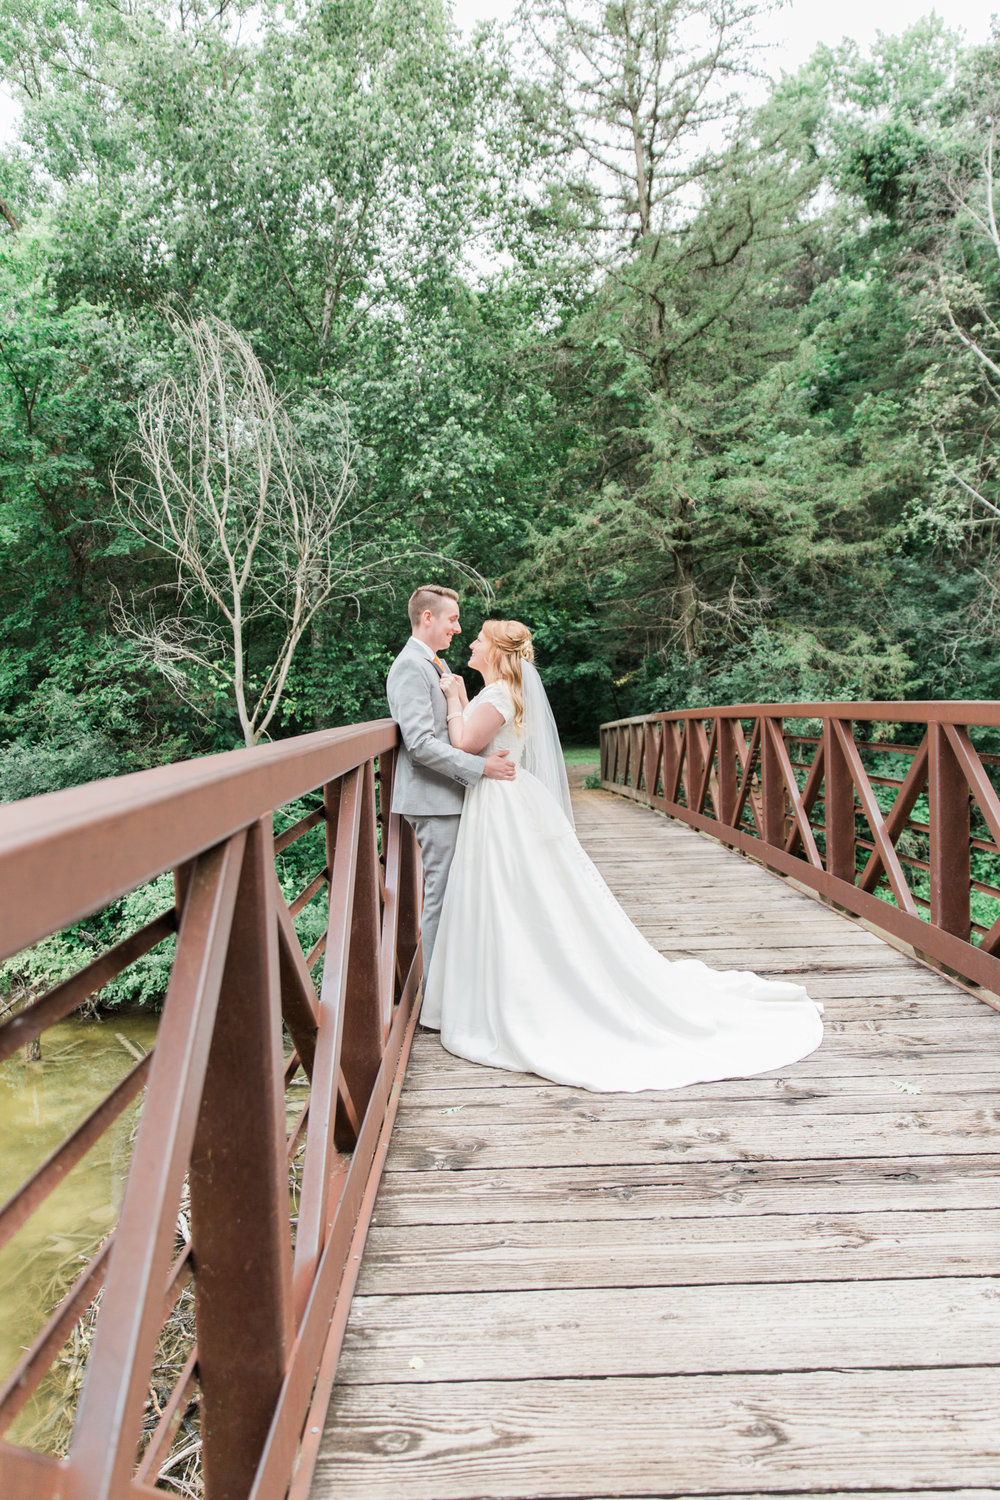 M Minnesota Wedding Photographer| Sierra & Jacob | LDS Photographer | Fine Art | Bridge |Eden & Me Photography